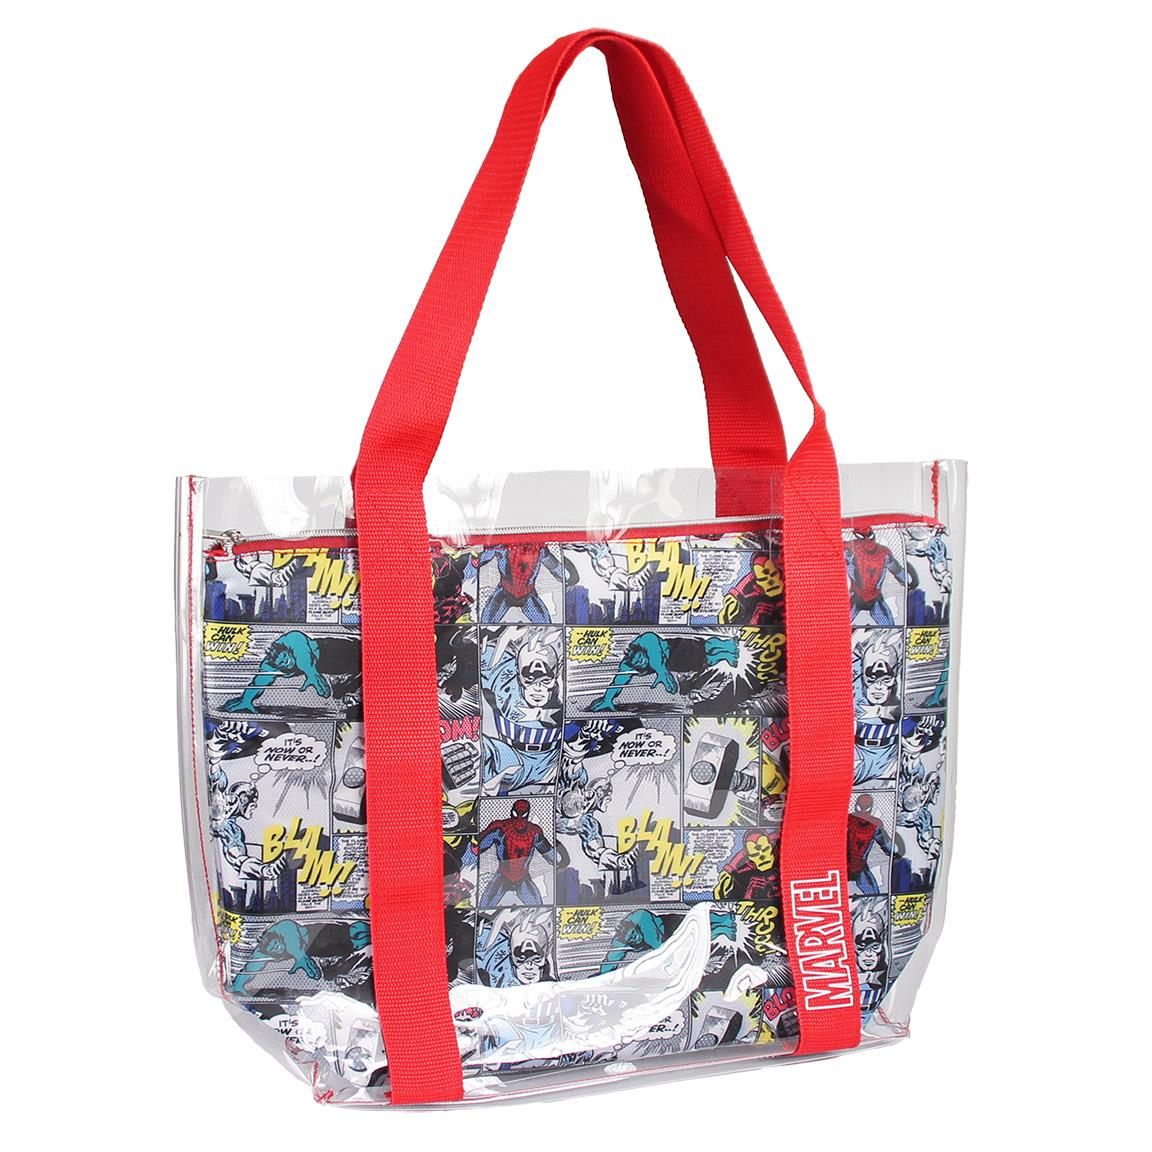 Marvel - Sac à main Avengers